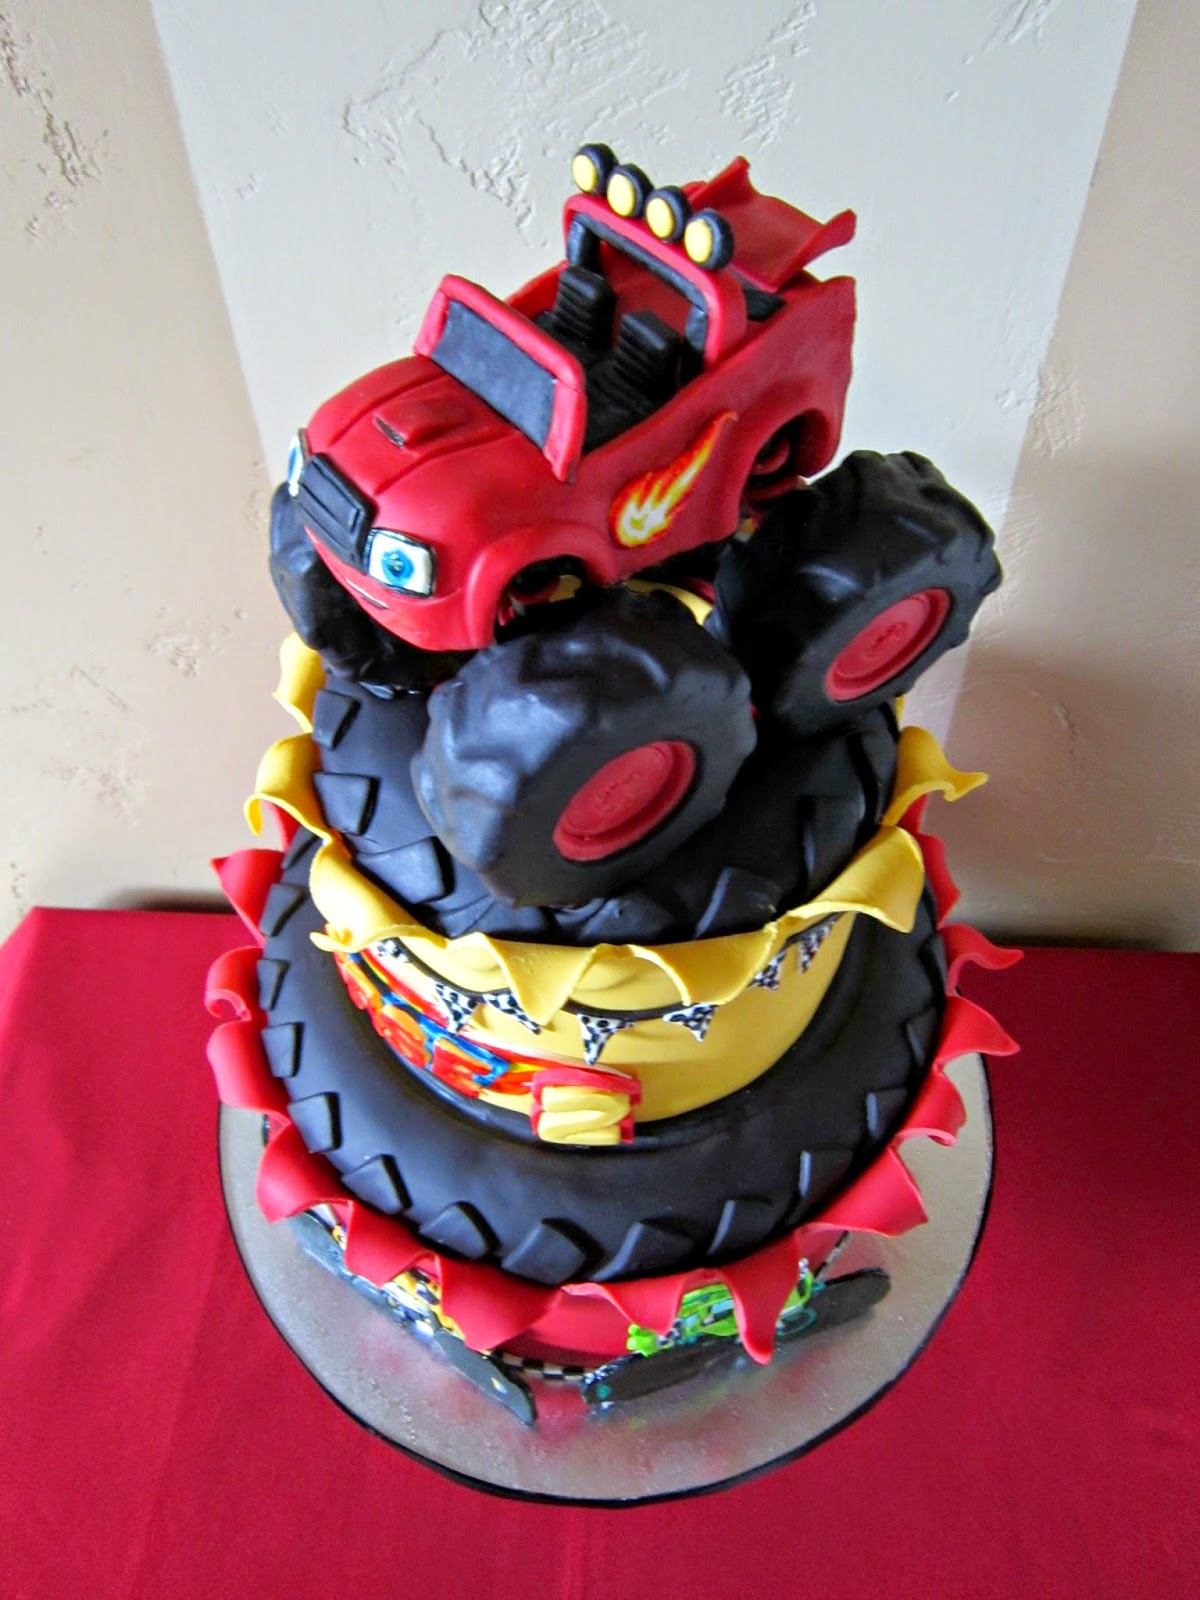 Delectable Cakes Blaze and the Monster Machines birthday cake